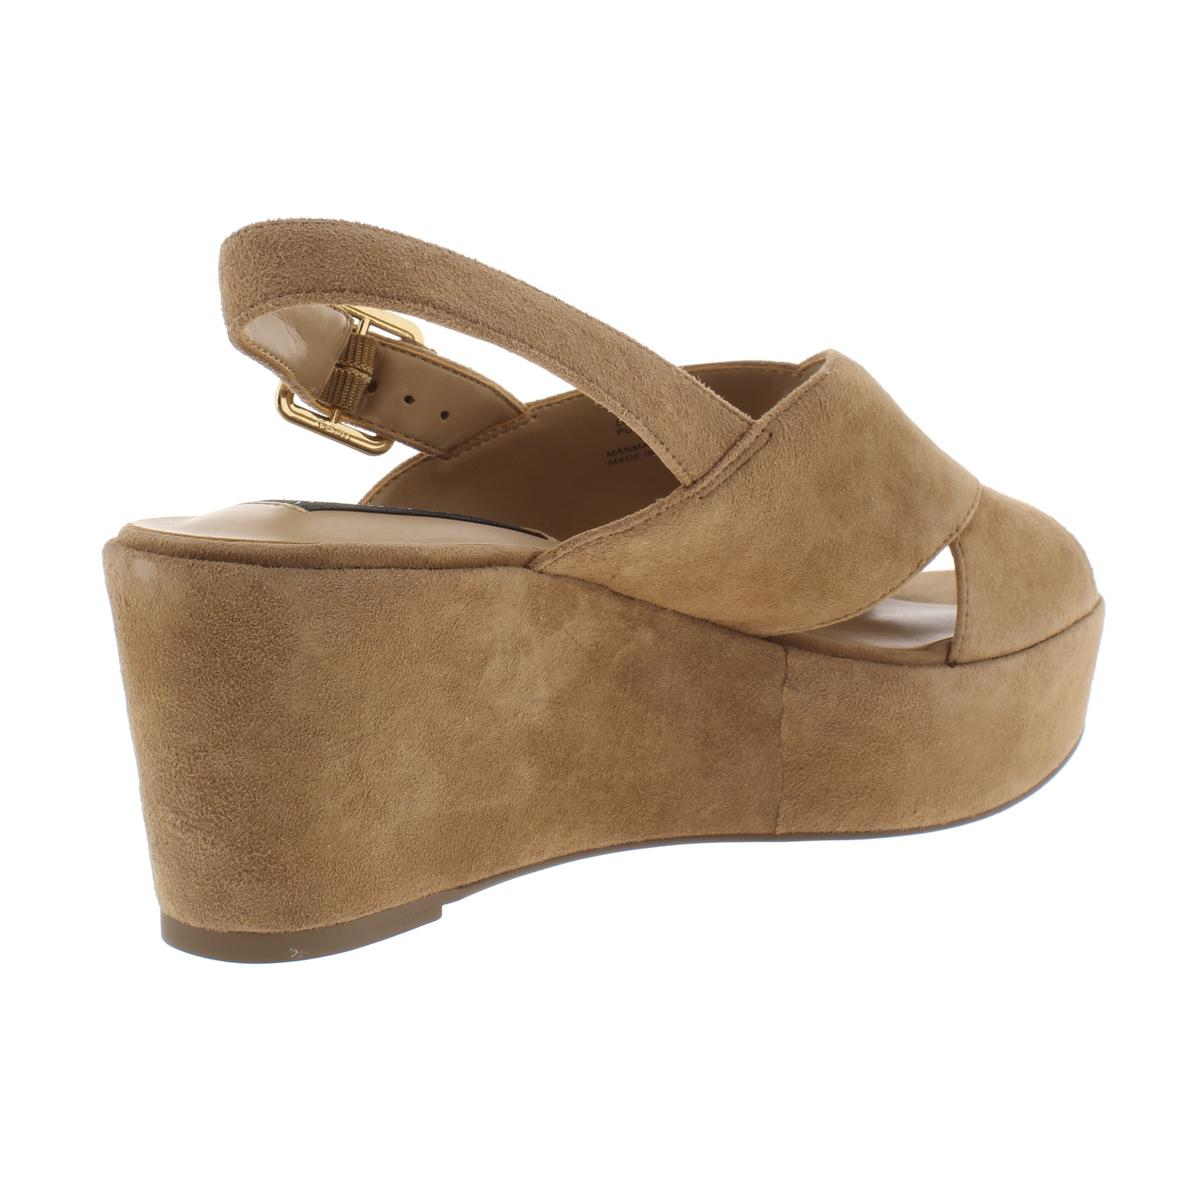 Steven By Steve Steve Steve Madden Womens Sol Suede Wedges Dress Sandals shoes BHFO 7716 01cd12